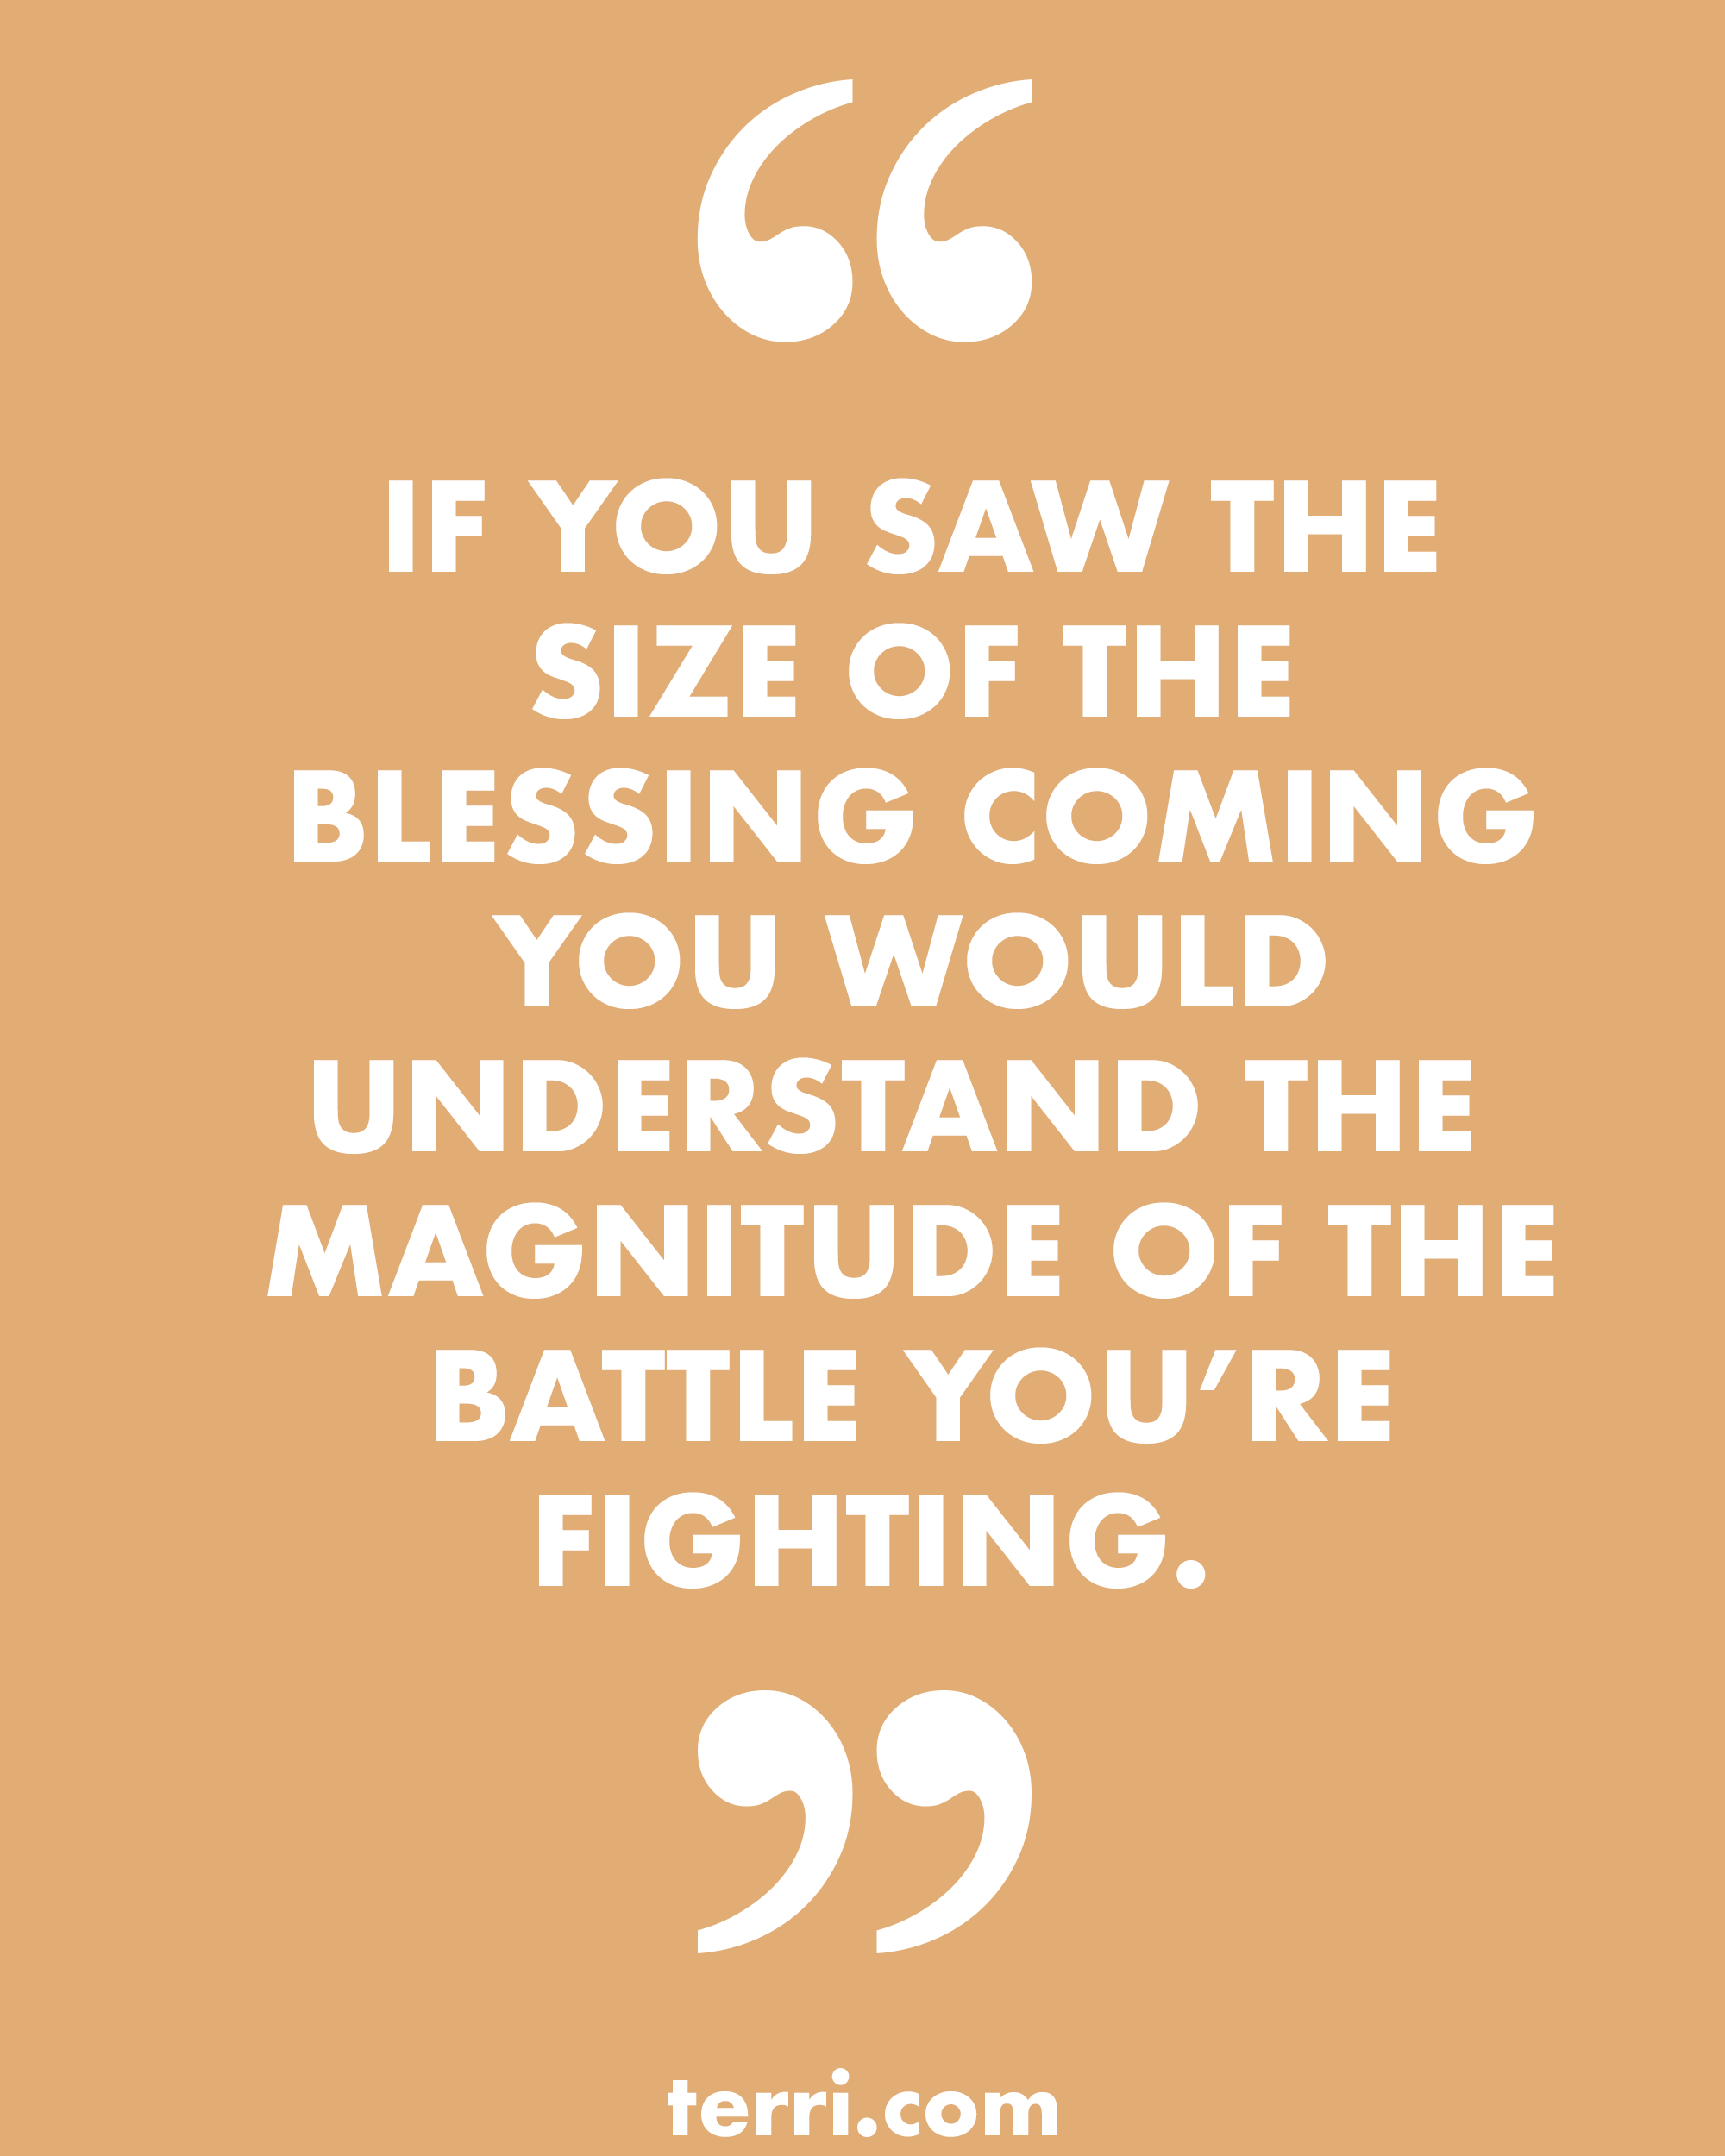 Life Size Quotes: IF YOU SAW THE SIZE OF THE BLESSING YOU WOULD UNDERSTAND